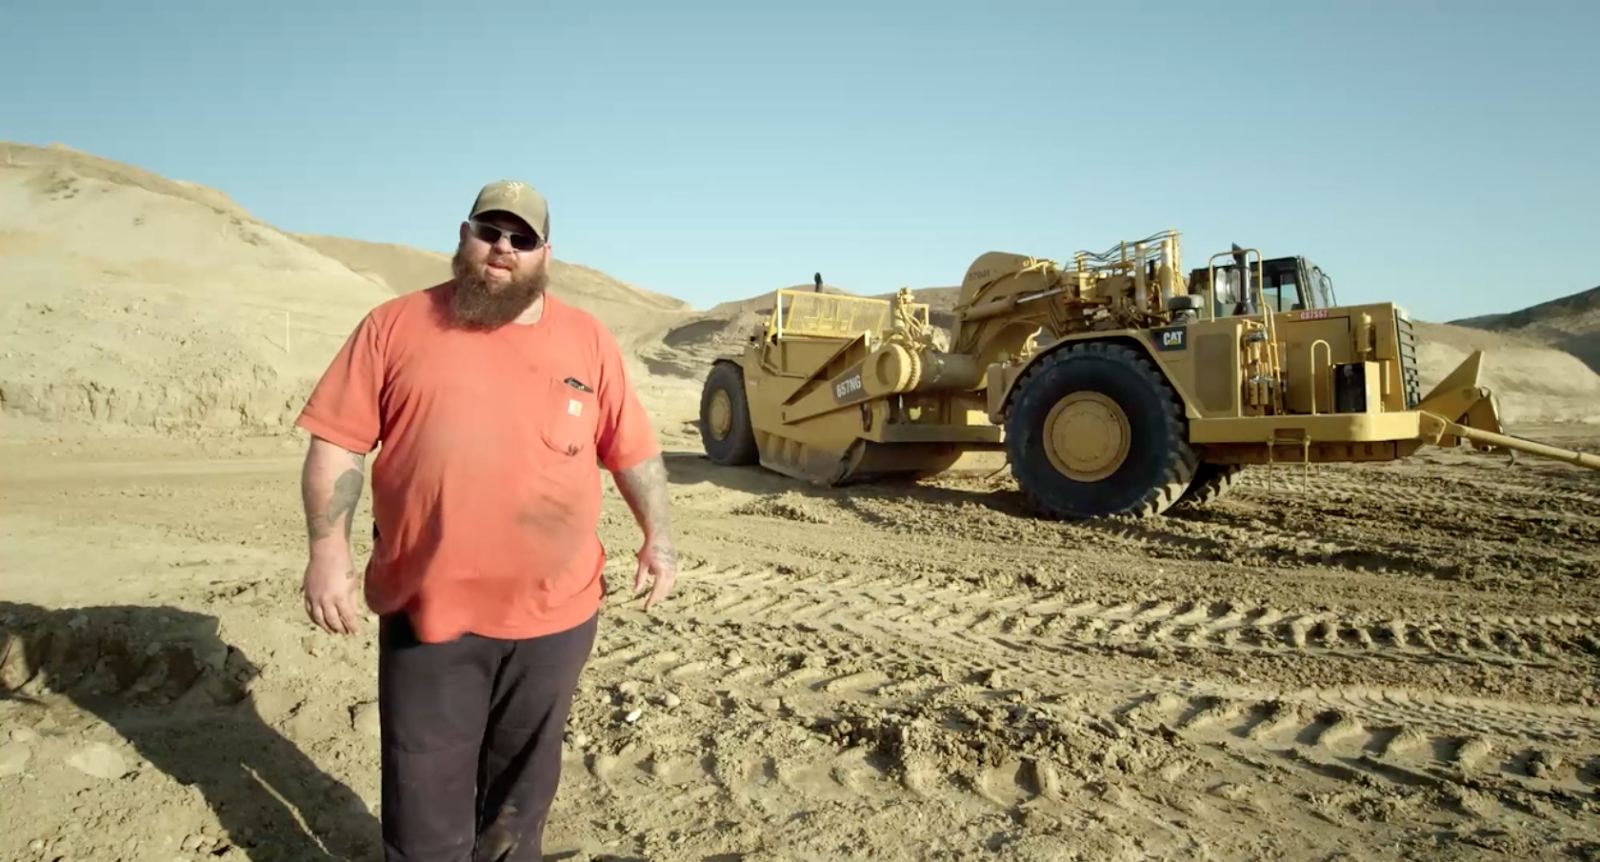 Steven Kuzar standing in front of the Caterpillar truck in the San Fernando Valley from documentary film Earth